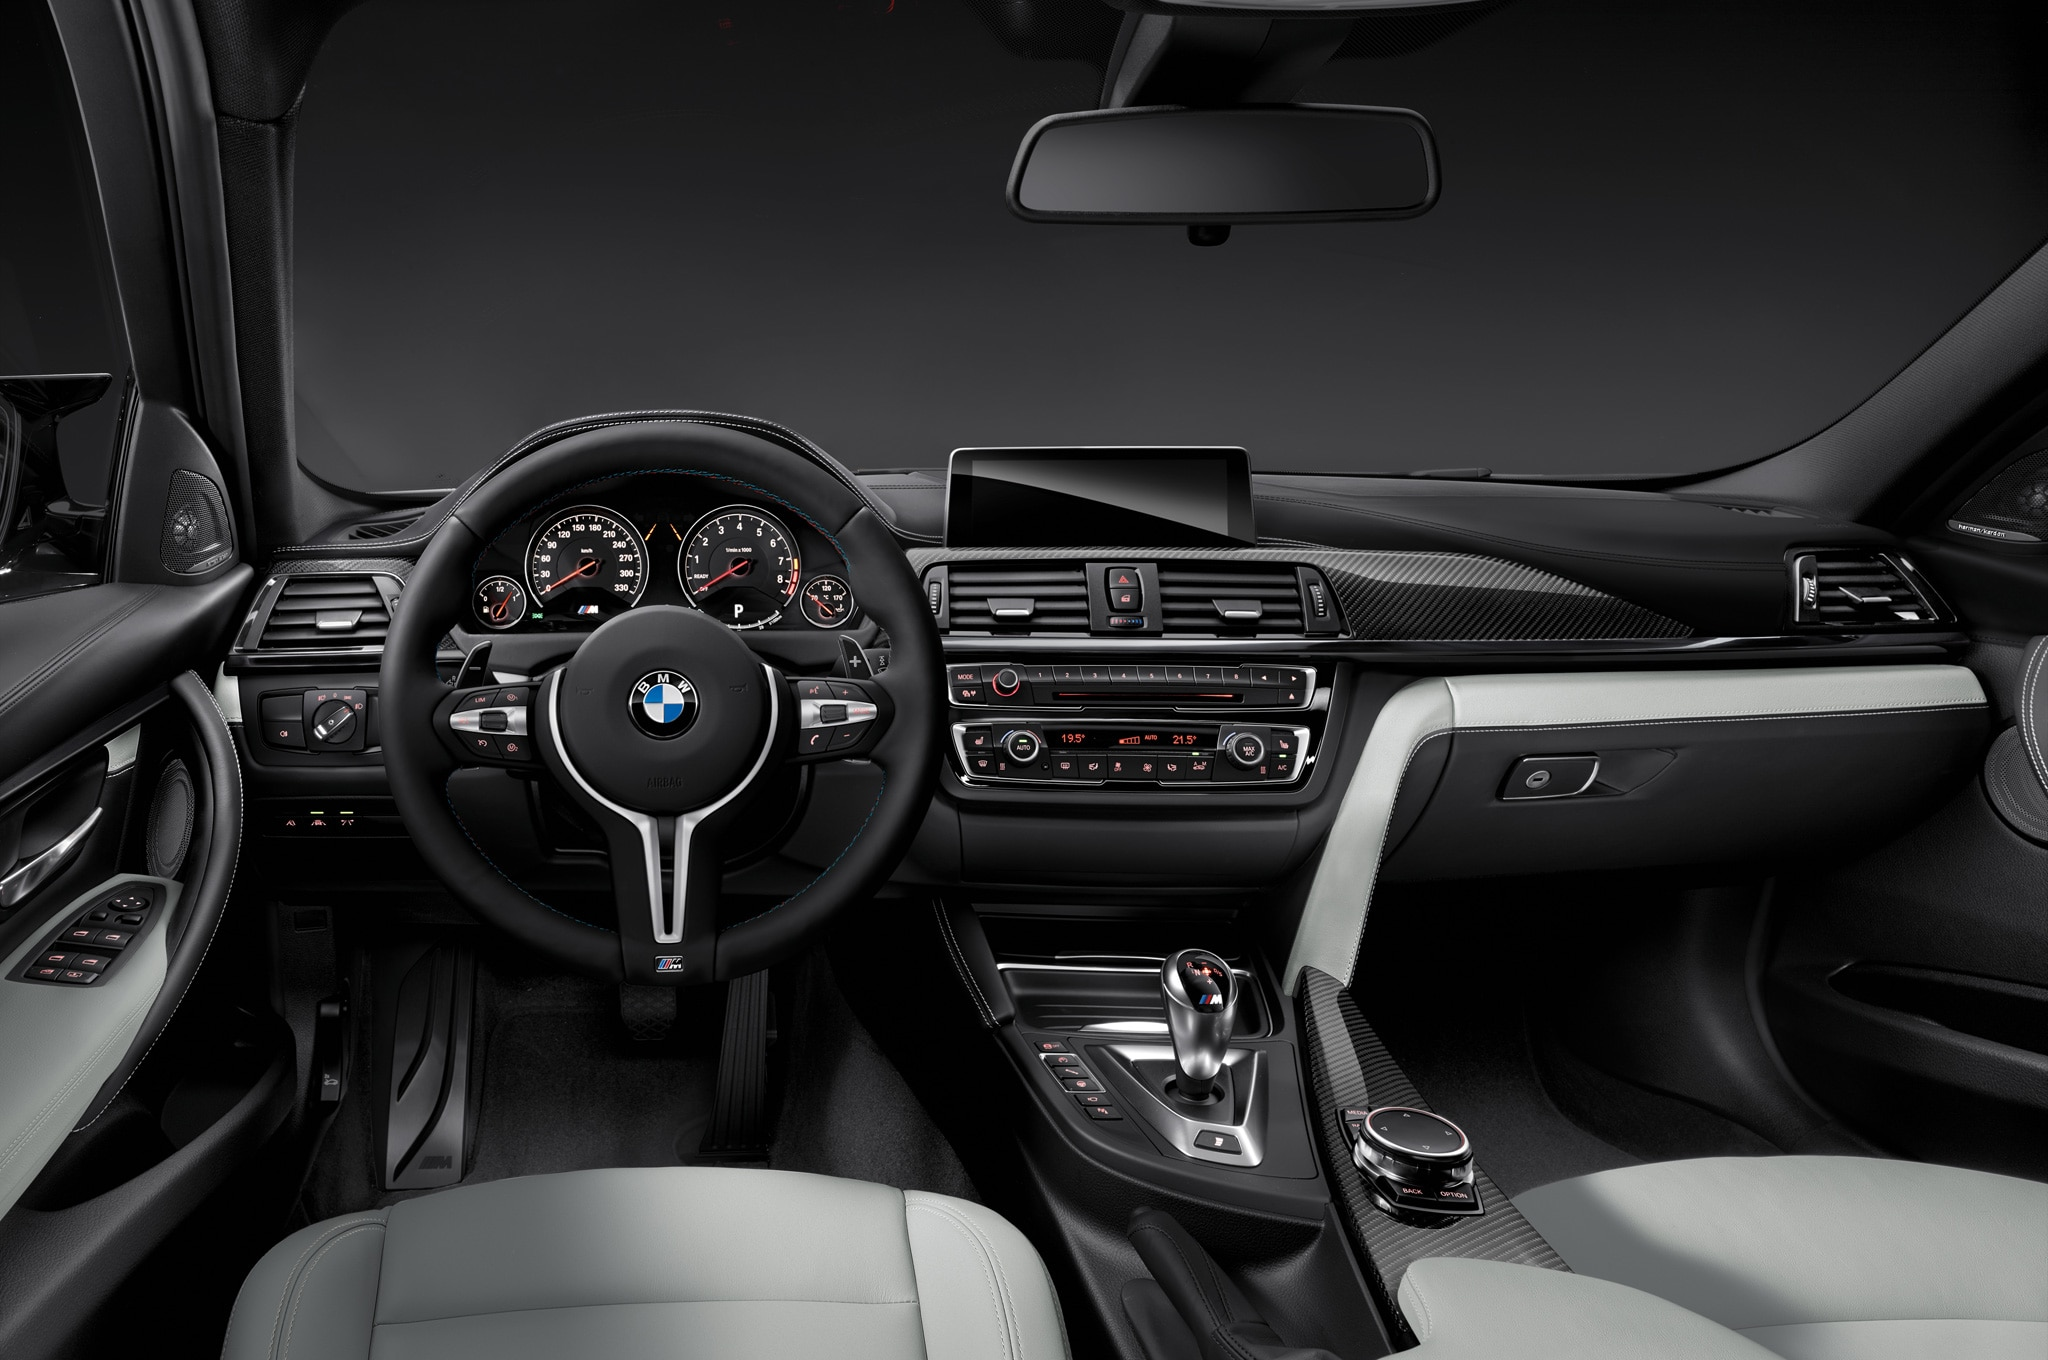 2015 bmw m3 and m4 revealed for 2014 detroit auto show show more sciox Choice Image